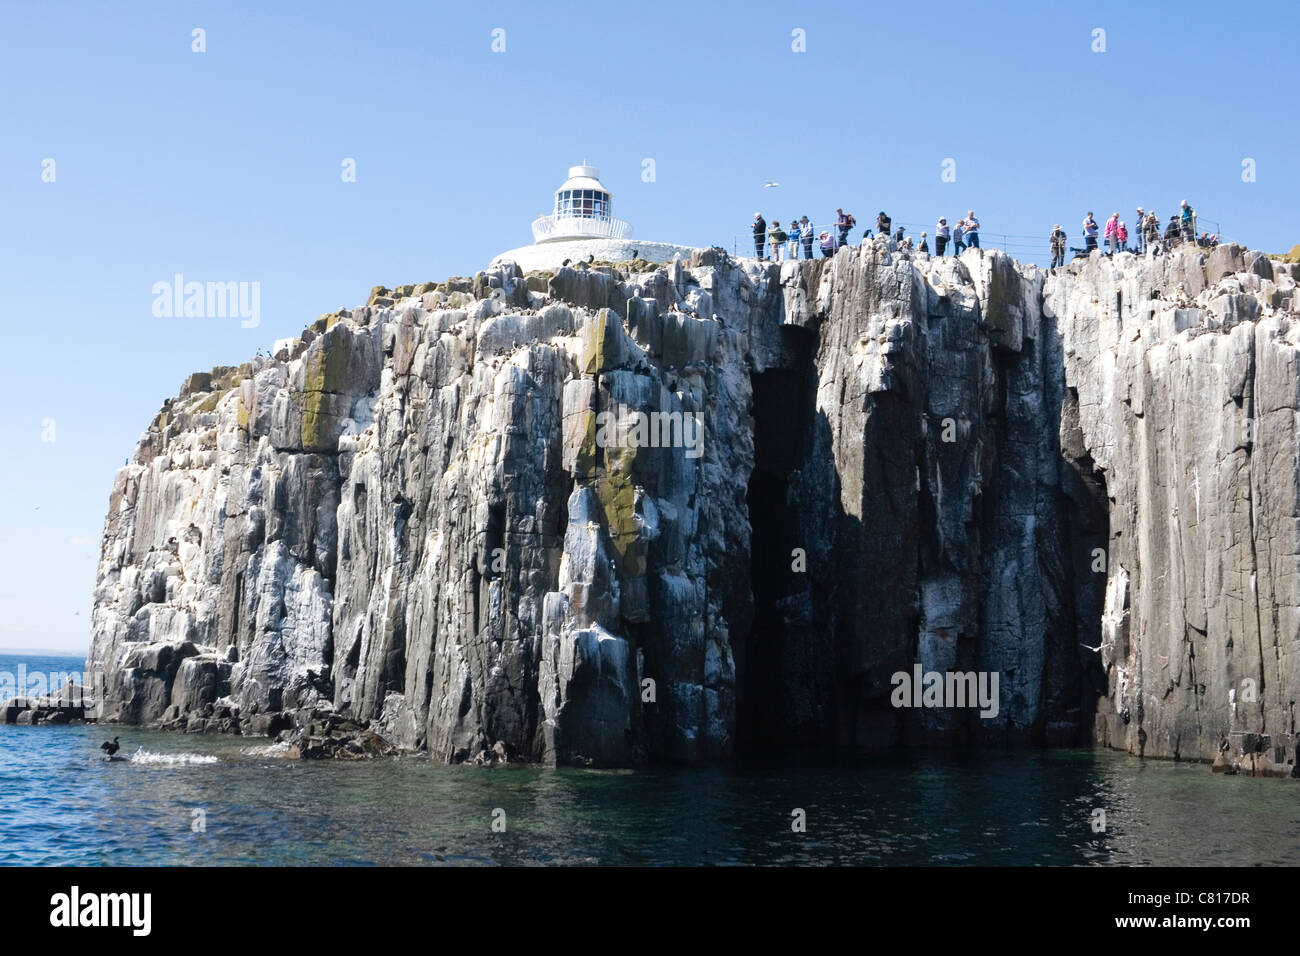 Inner Farne Lighthouse and tourists photographing the seabird colony. Farne Islands, Northumberland Coast, England. - Stock Image